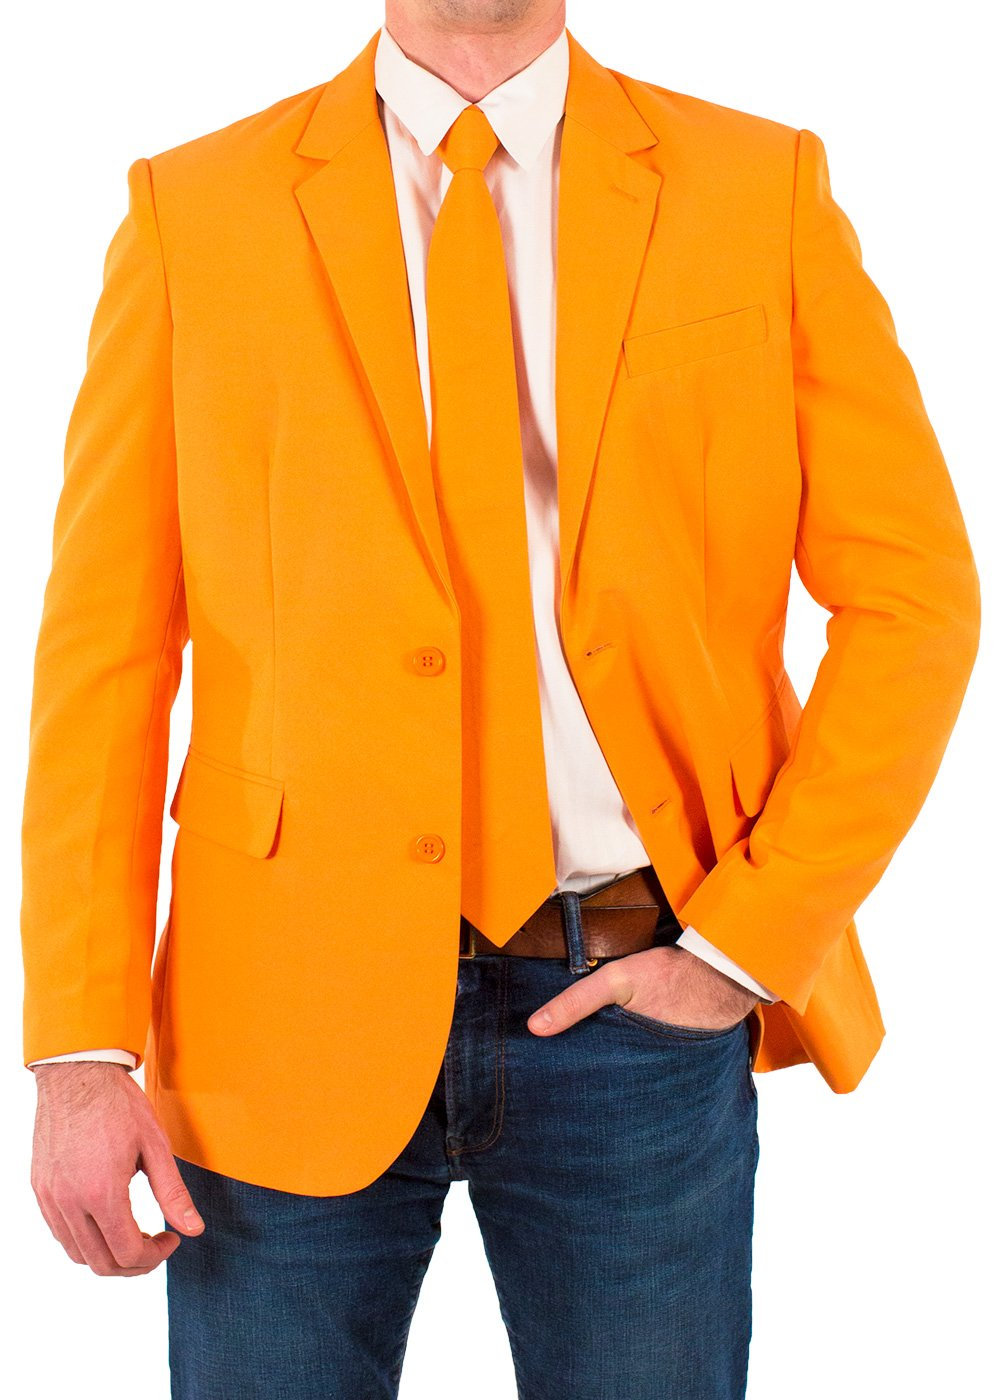 Festified Men's Classic Party Suit Coat and Tie In Orange (42)